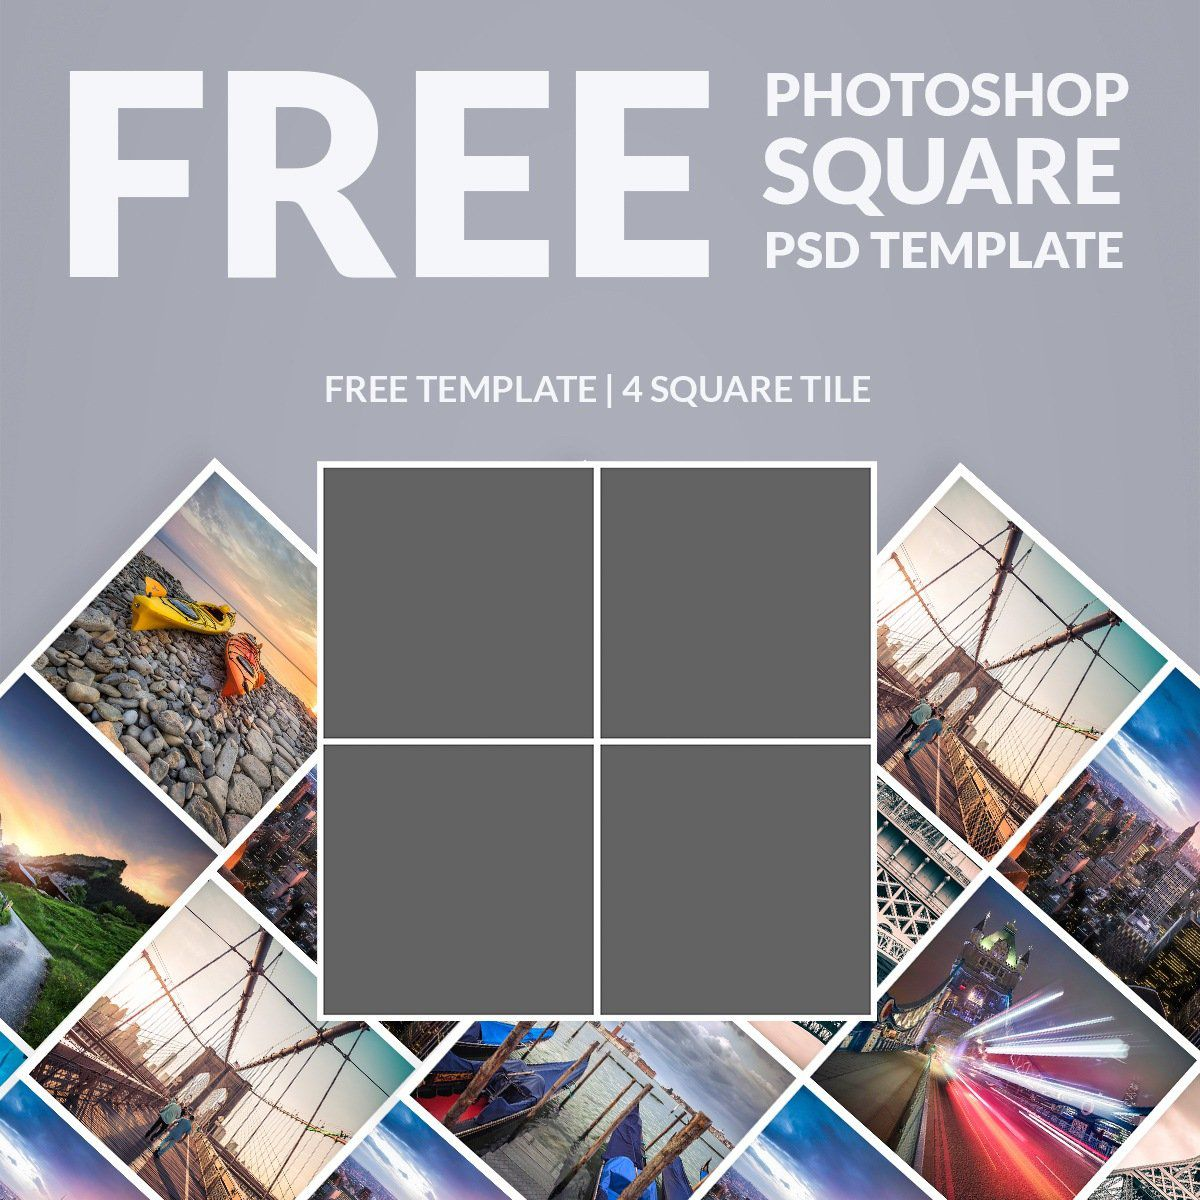 006 Formidable Free Photo Collage Template Psd High Resolution  Photoshop Download Heart Shaped For ElementFull